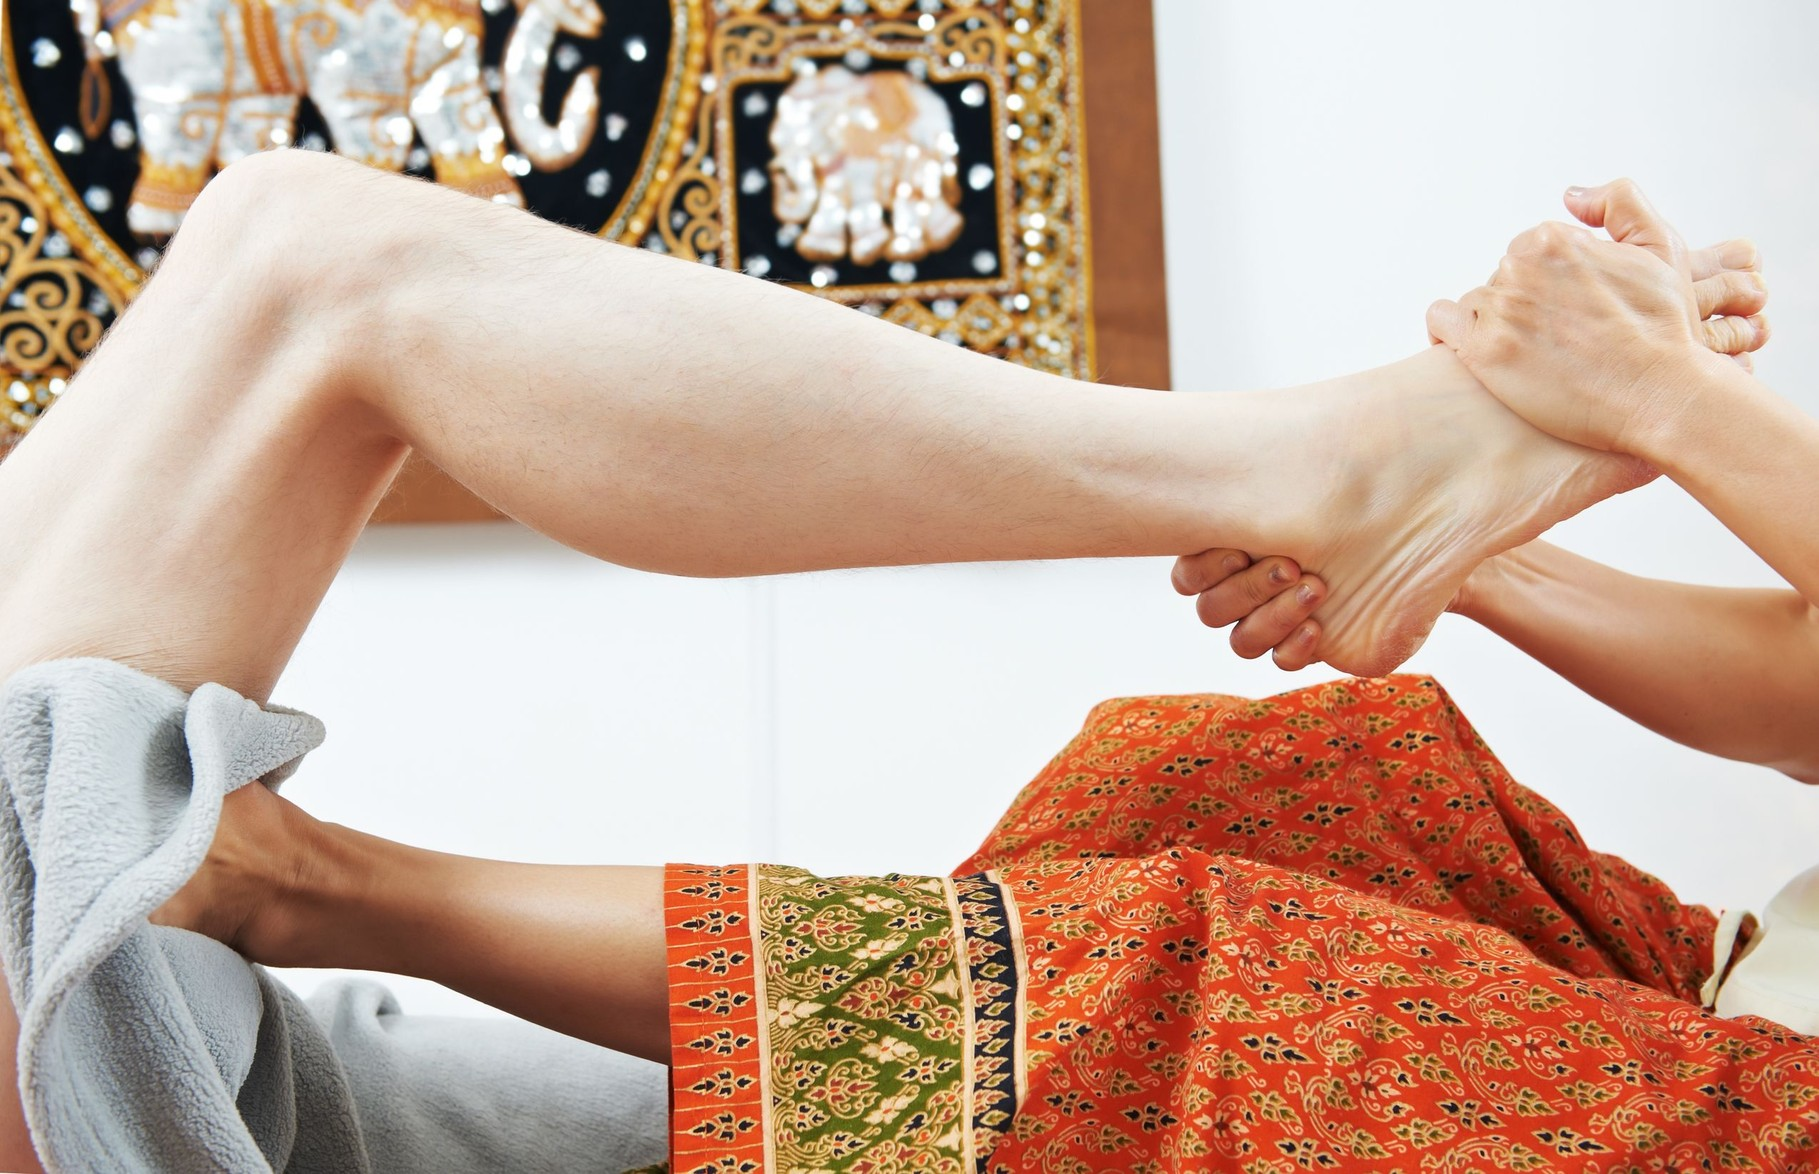 Thai Massage Training